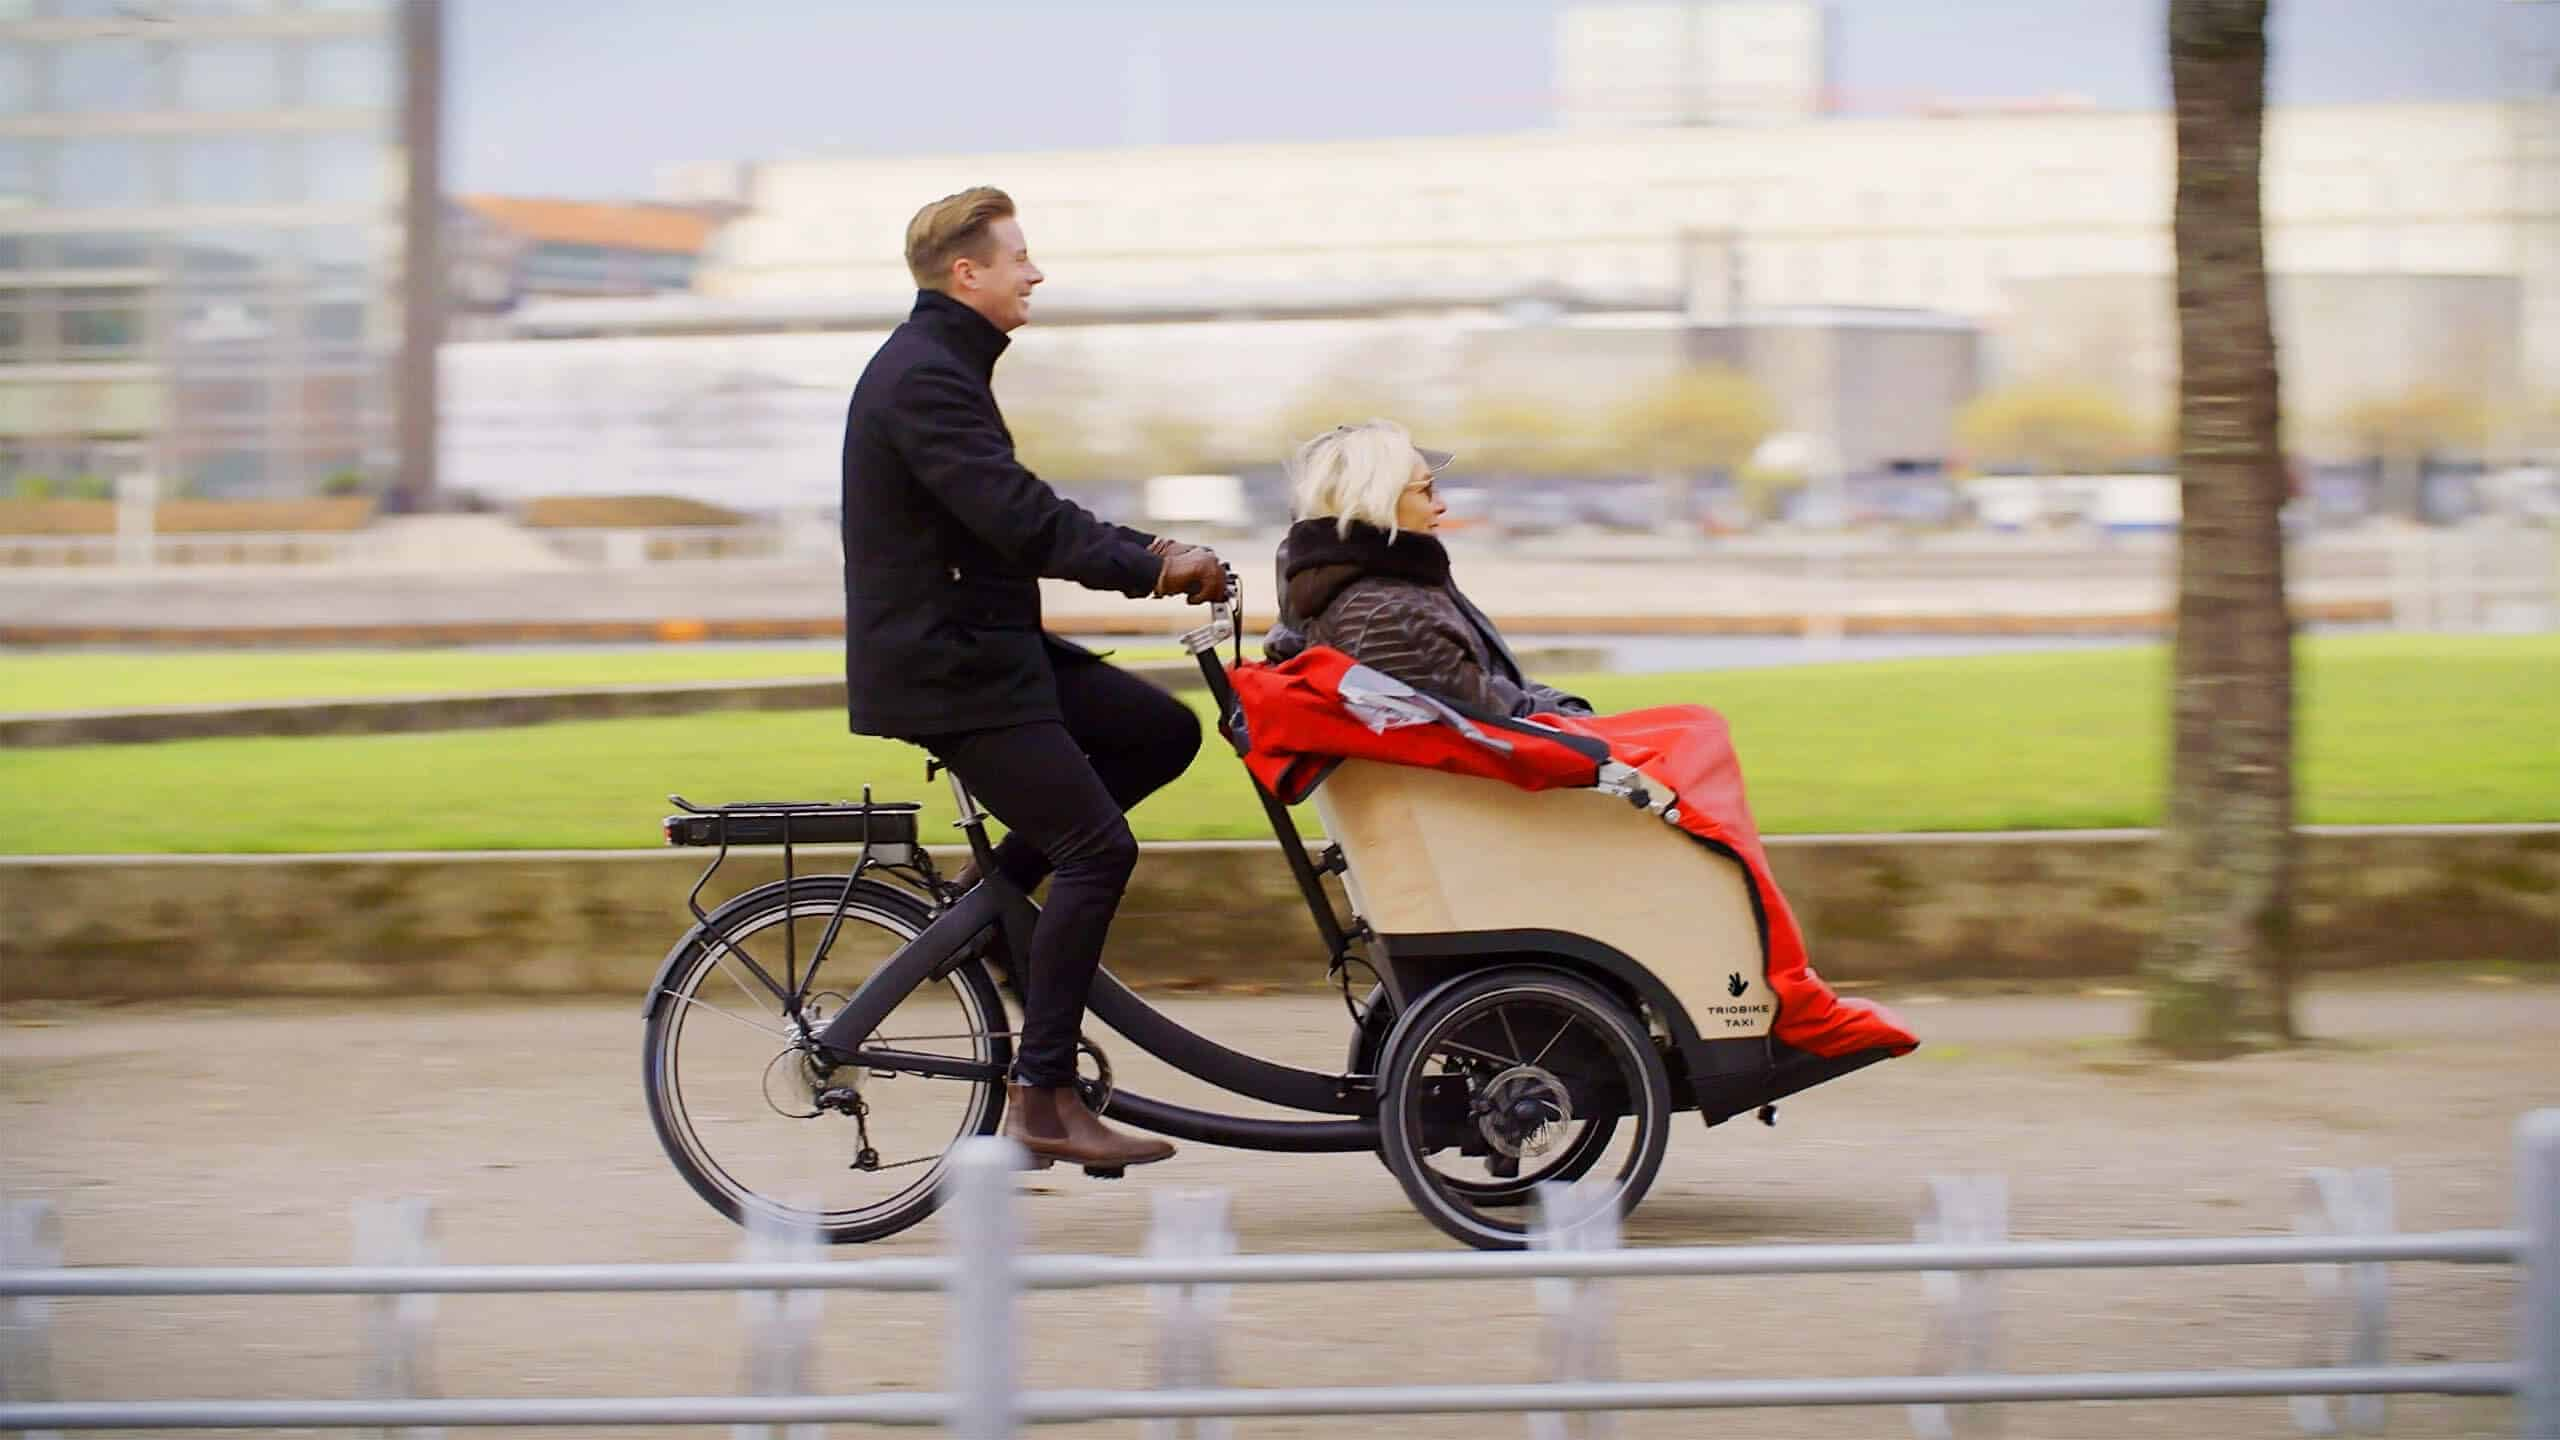 TRIOBIKE taxi - The taxi bike that offers comfort, accessibility and